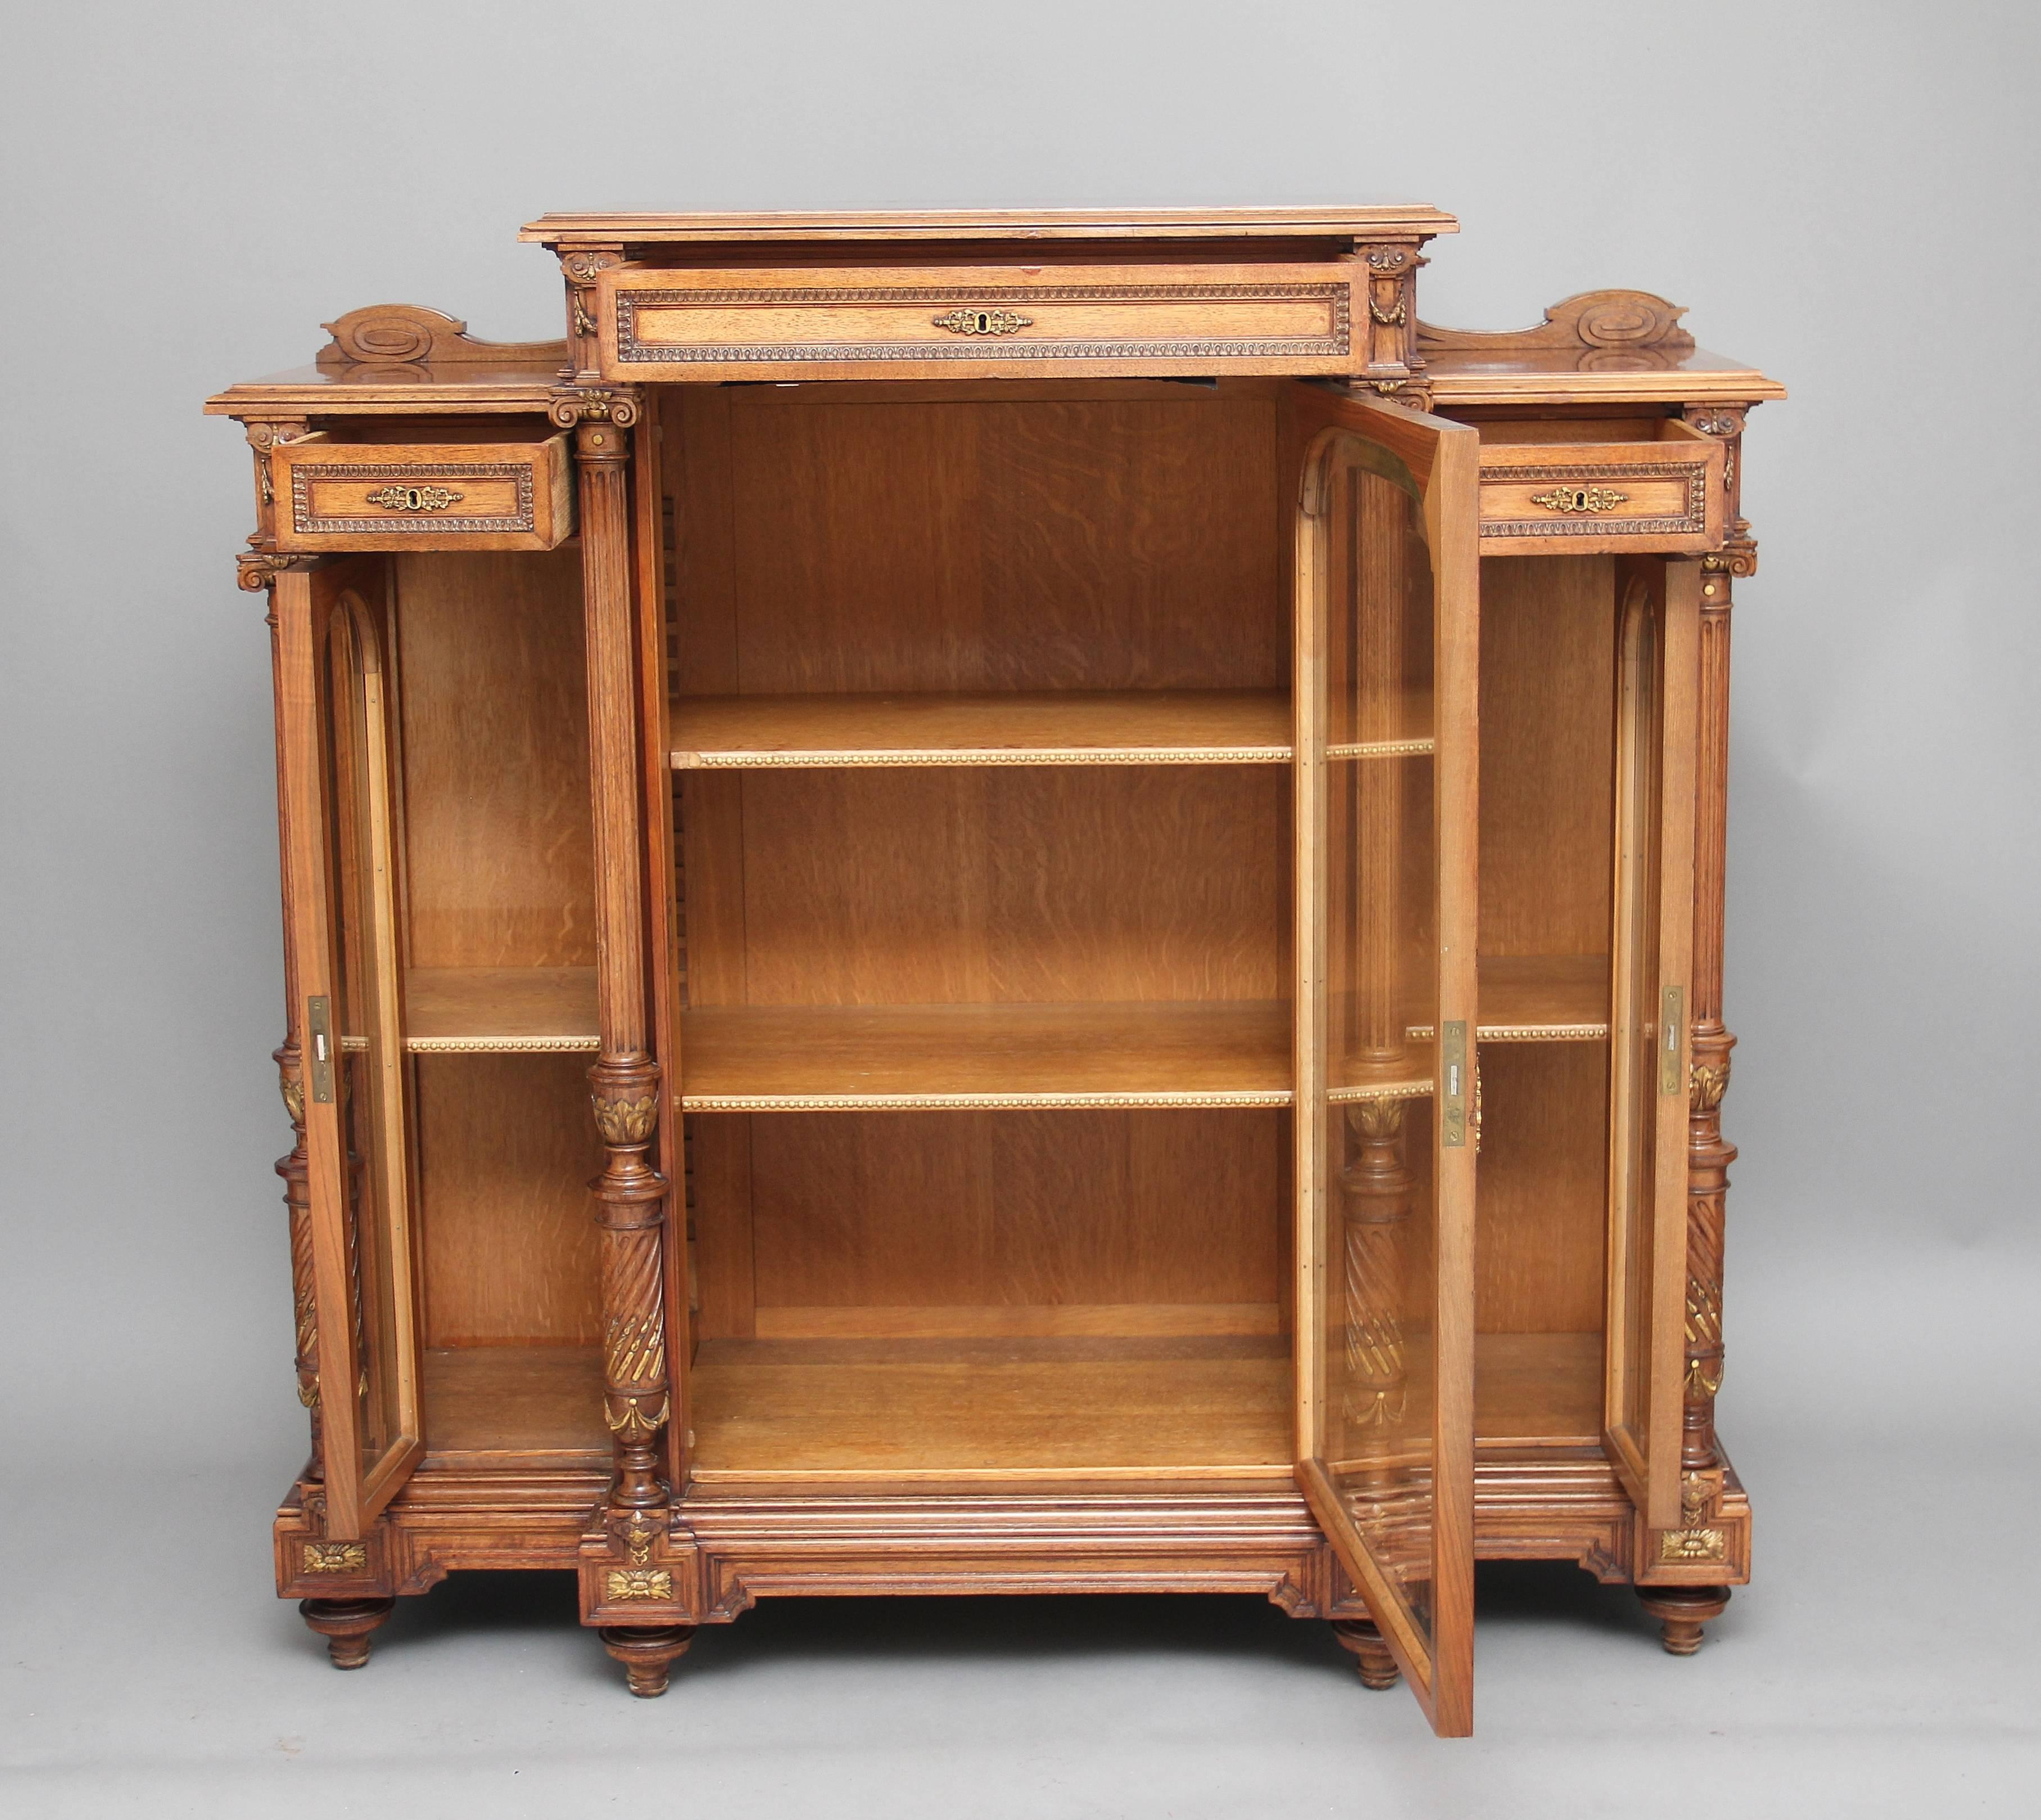 Contemplative Reproduction Antique Style Mahogany Bookcase Antique Furniture